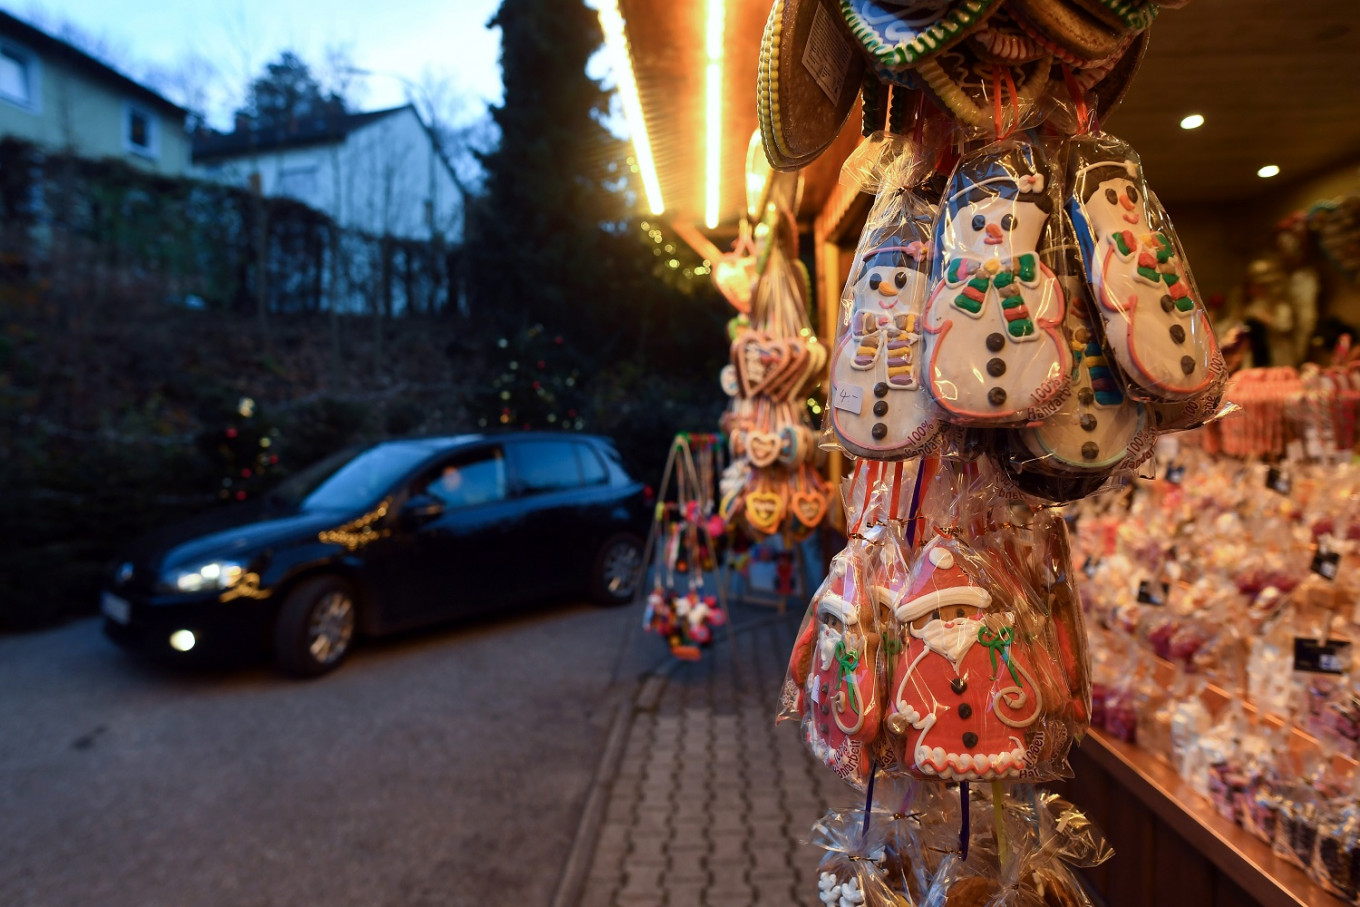 Undaunted by pandemic, Bavarian innkeeper opens drive-through Christmas market